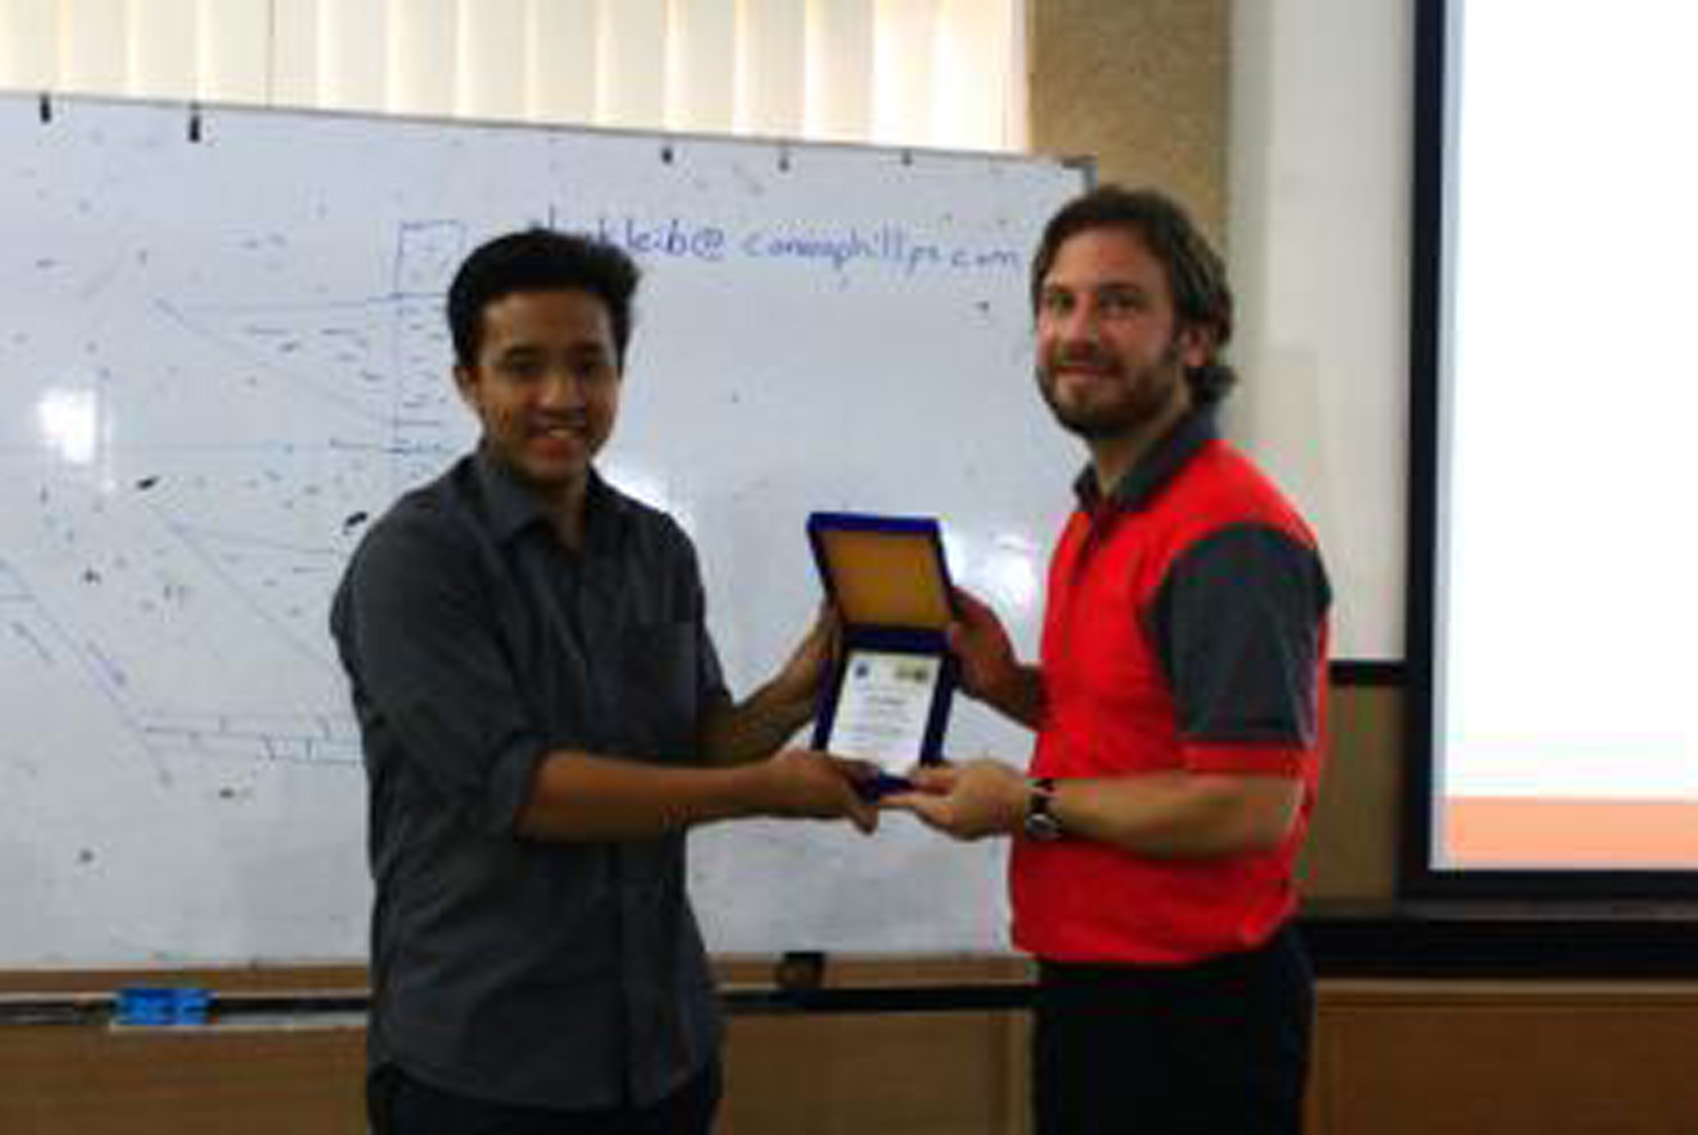 Memento given by ITB SC AAPG President to Mr. Derik W. Kleibacker (Chief Geology ConocoPhillips Indonesia)